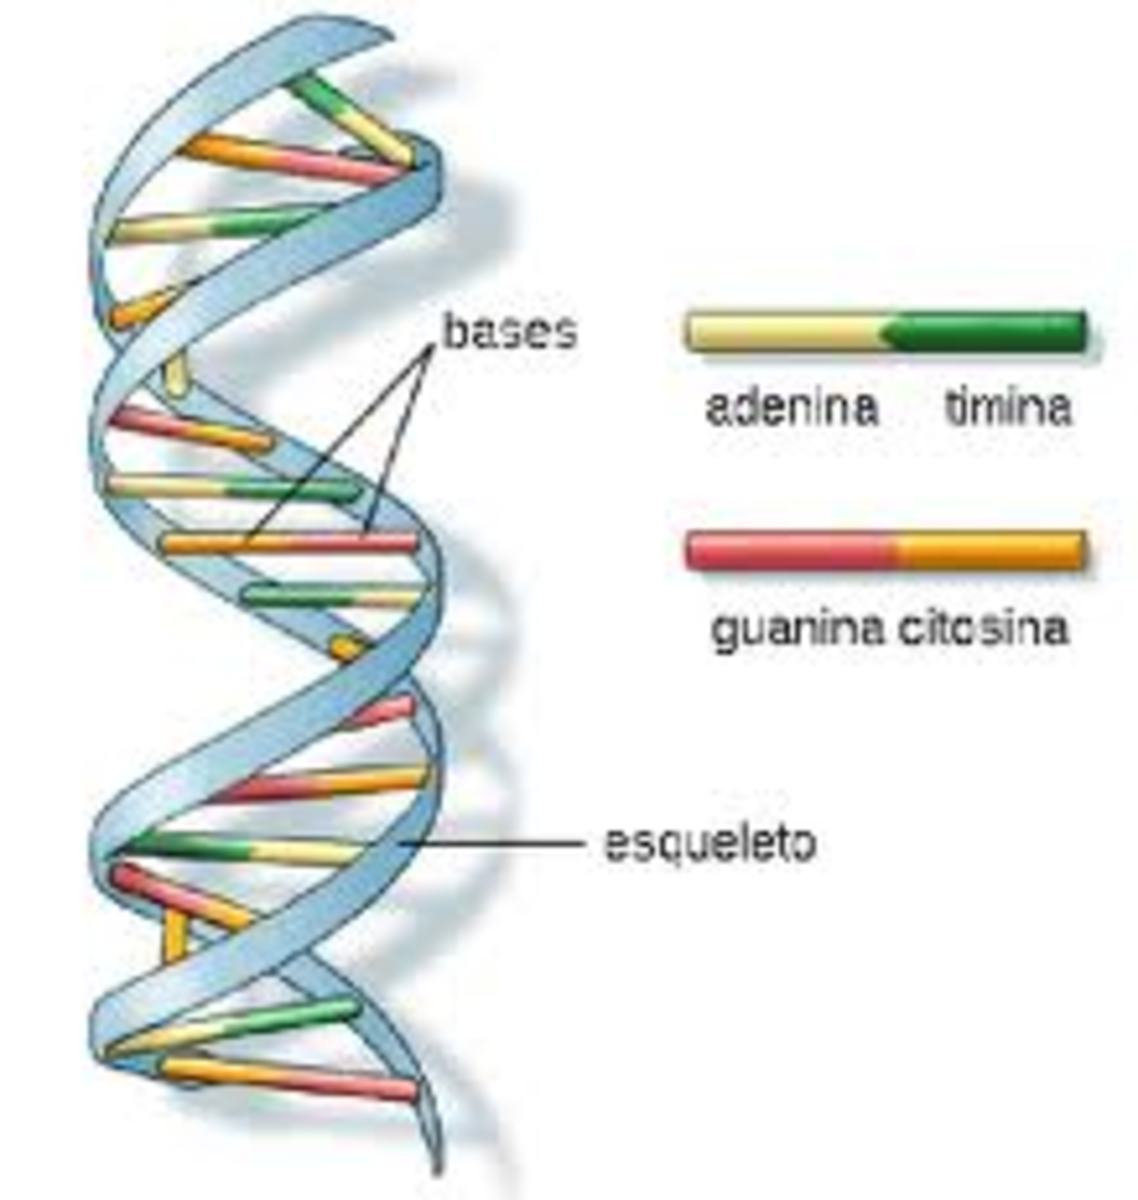 DNA maybe the greatest example of an advanced algorithm known to mankind.